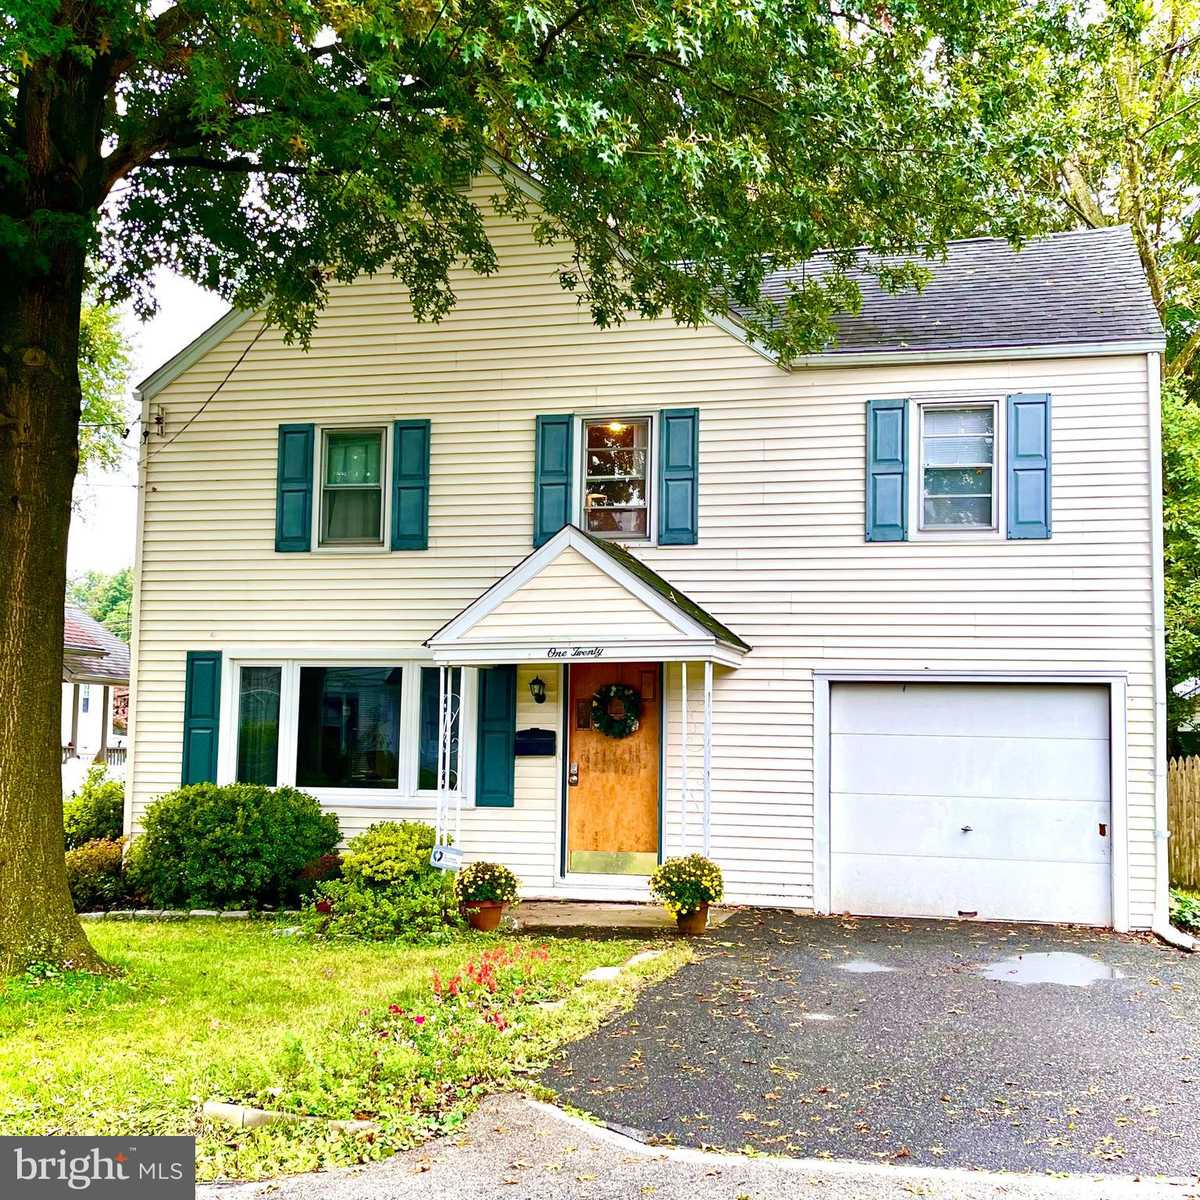 $302,000 - 4Br/1Ba -  for Sale in None Available, Wallingford